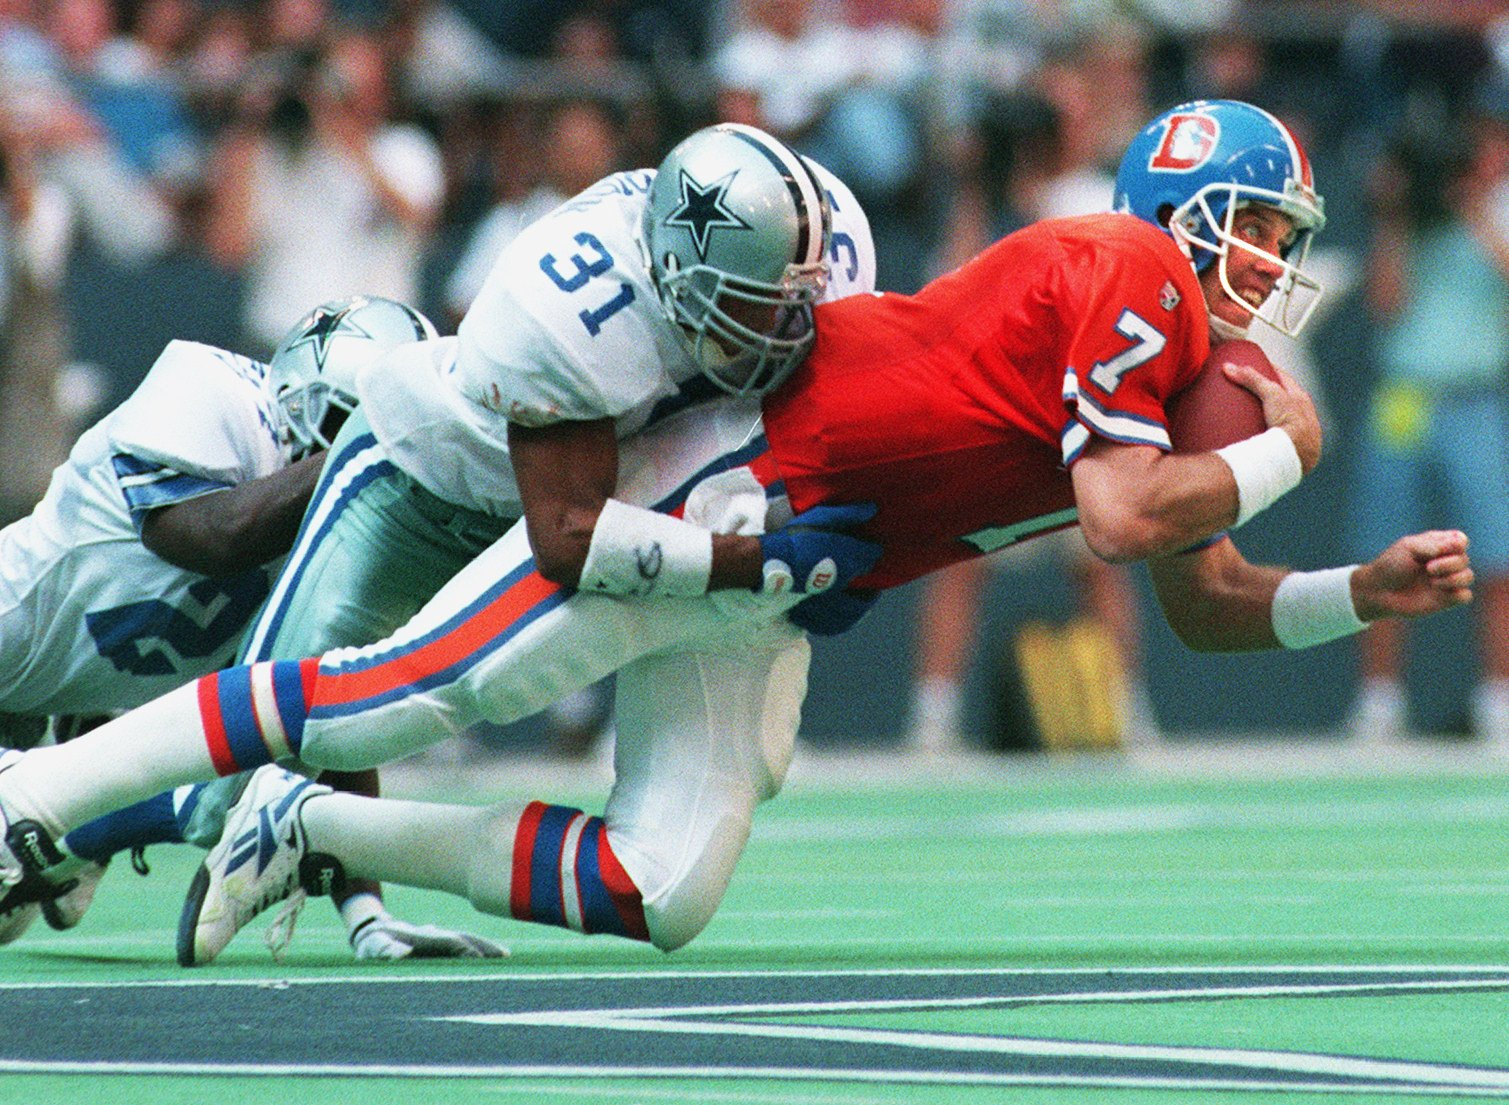 Cowboys Blog - This Week in 1995: Cowboys hold off Broncos in home opener